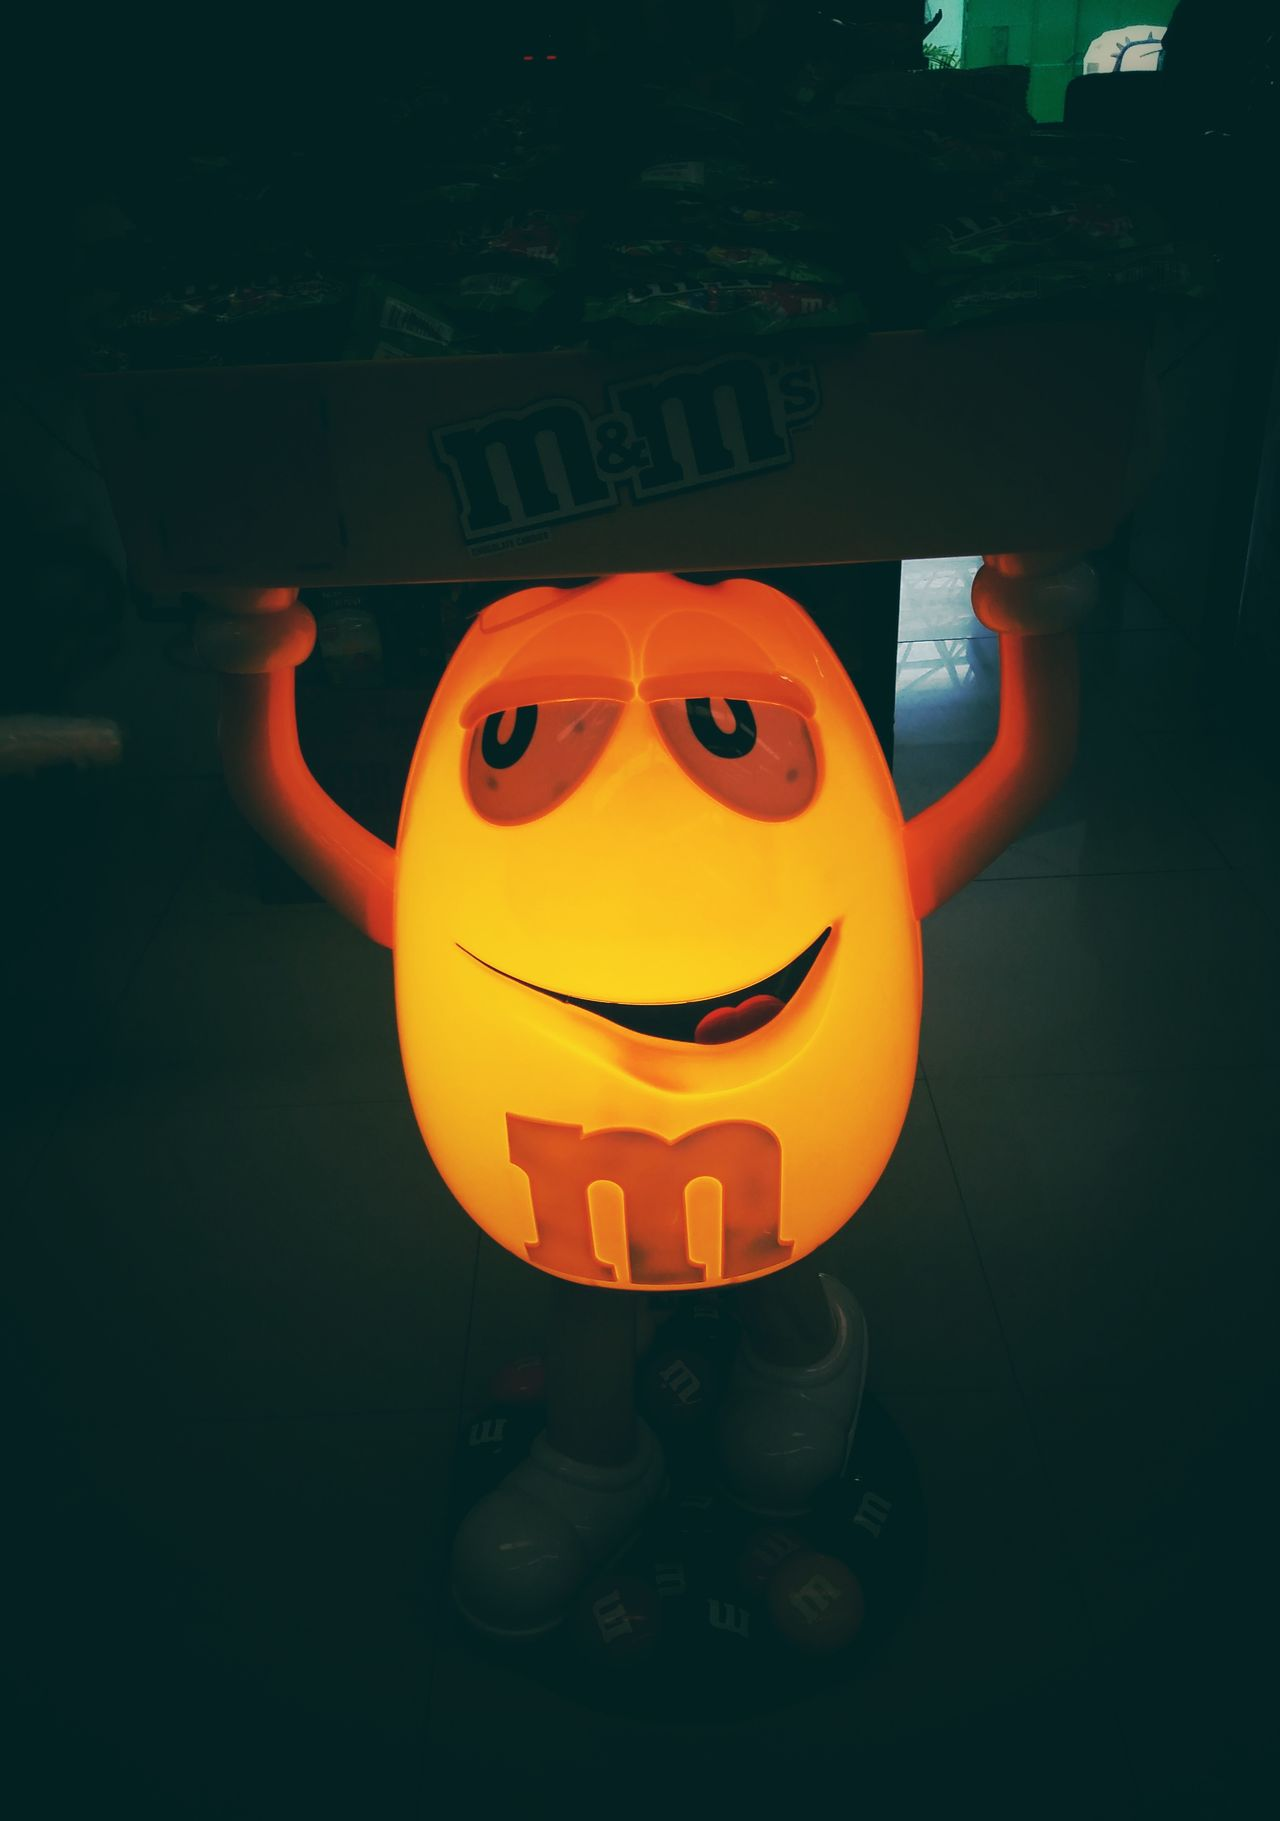 #candy #chocolate #light #Light & Shadow #m&ms #streetphotography #stret #yellow